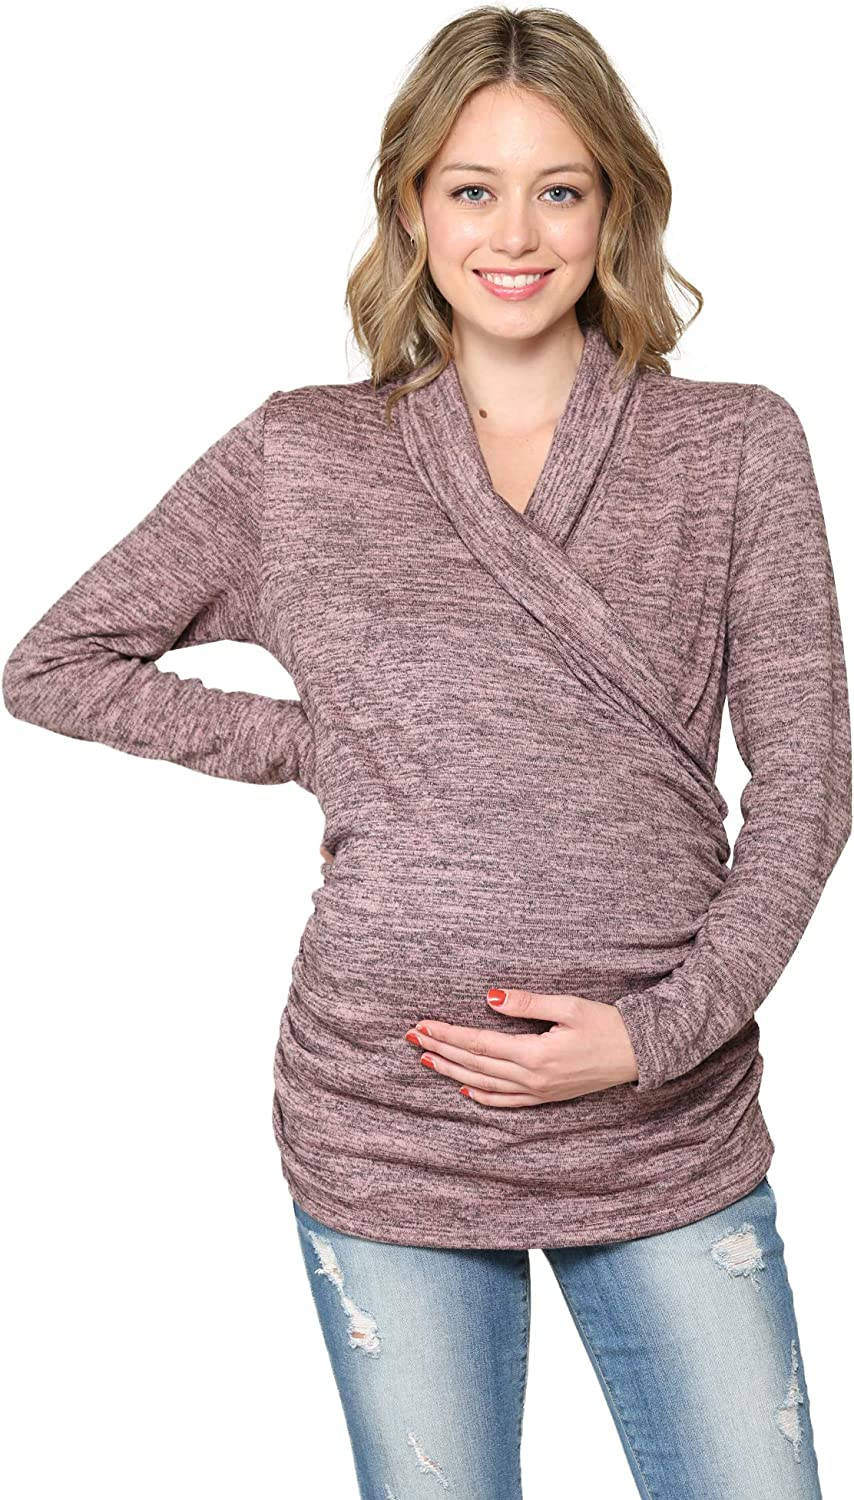 Women's Long Sleeve Sweater Maternity Max 44% OFF Top Price reduction